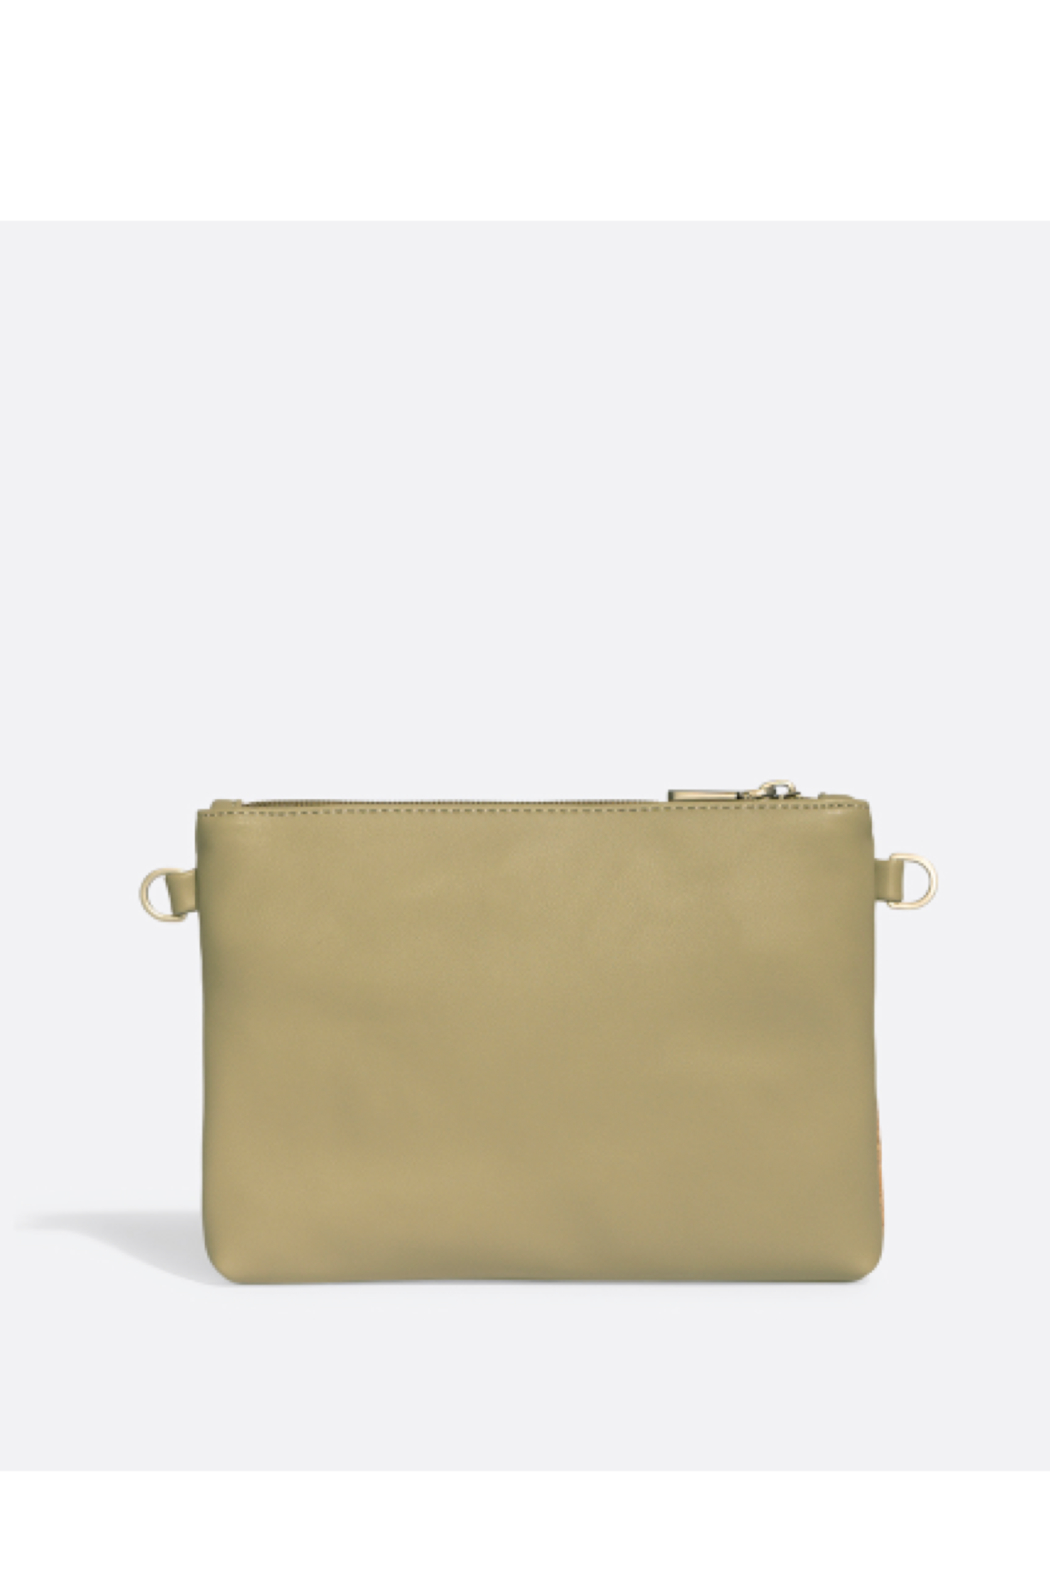 Pixie Mood Nicole Pouch Small – Sage / Cork - Front Full Image